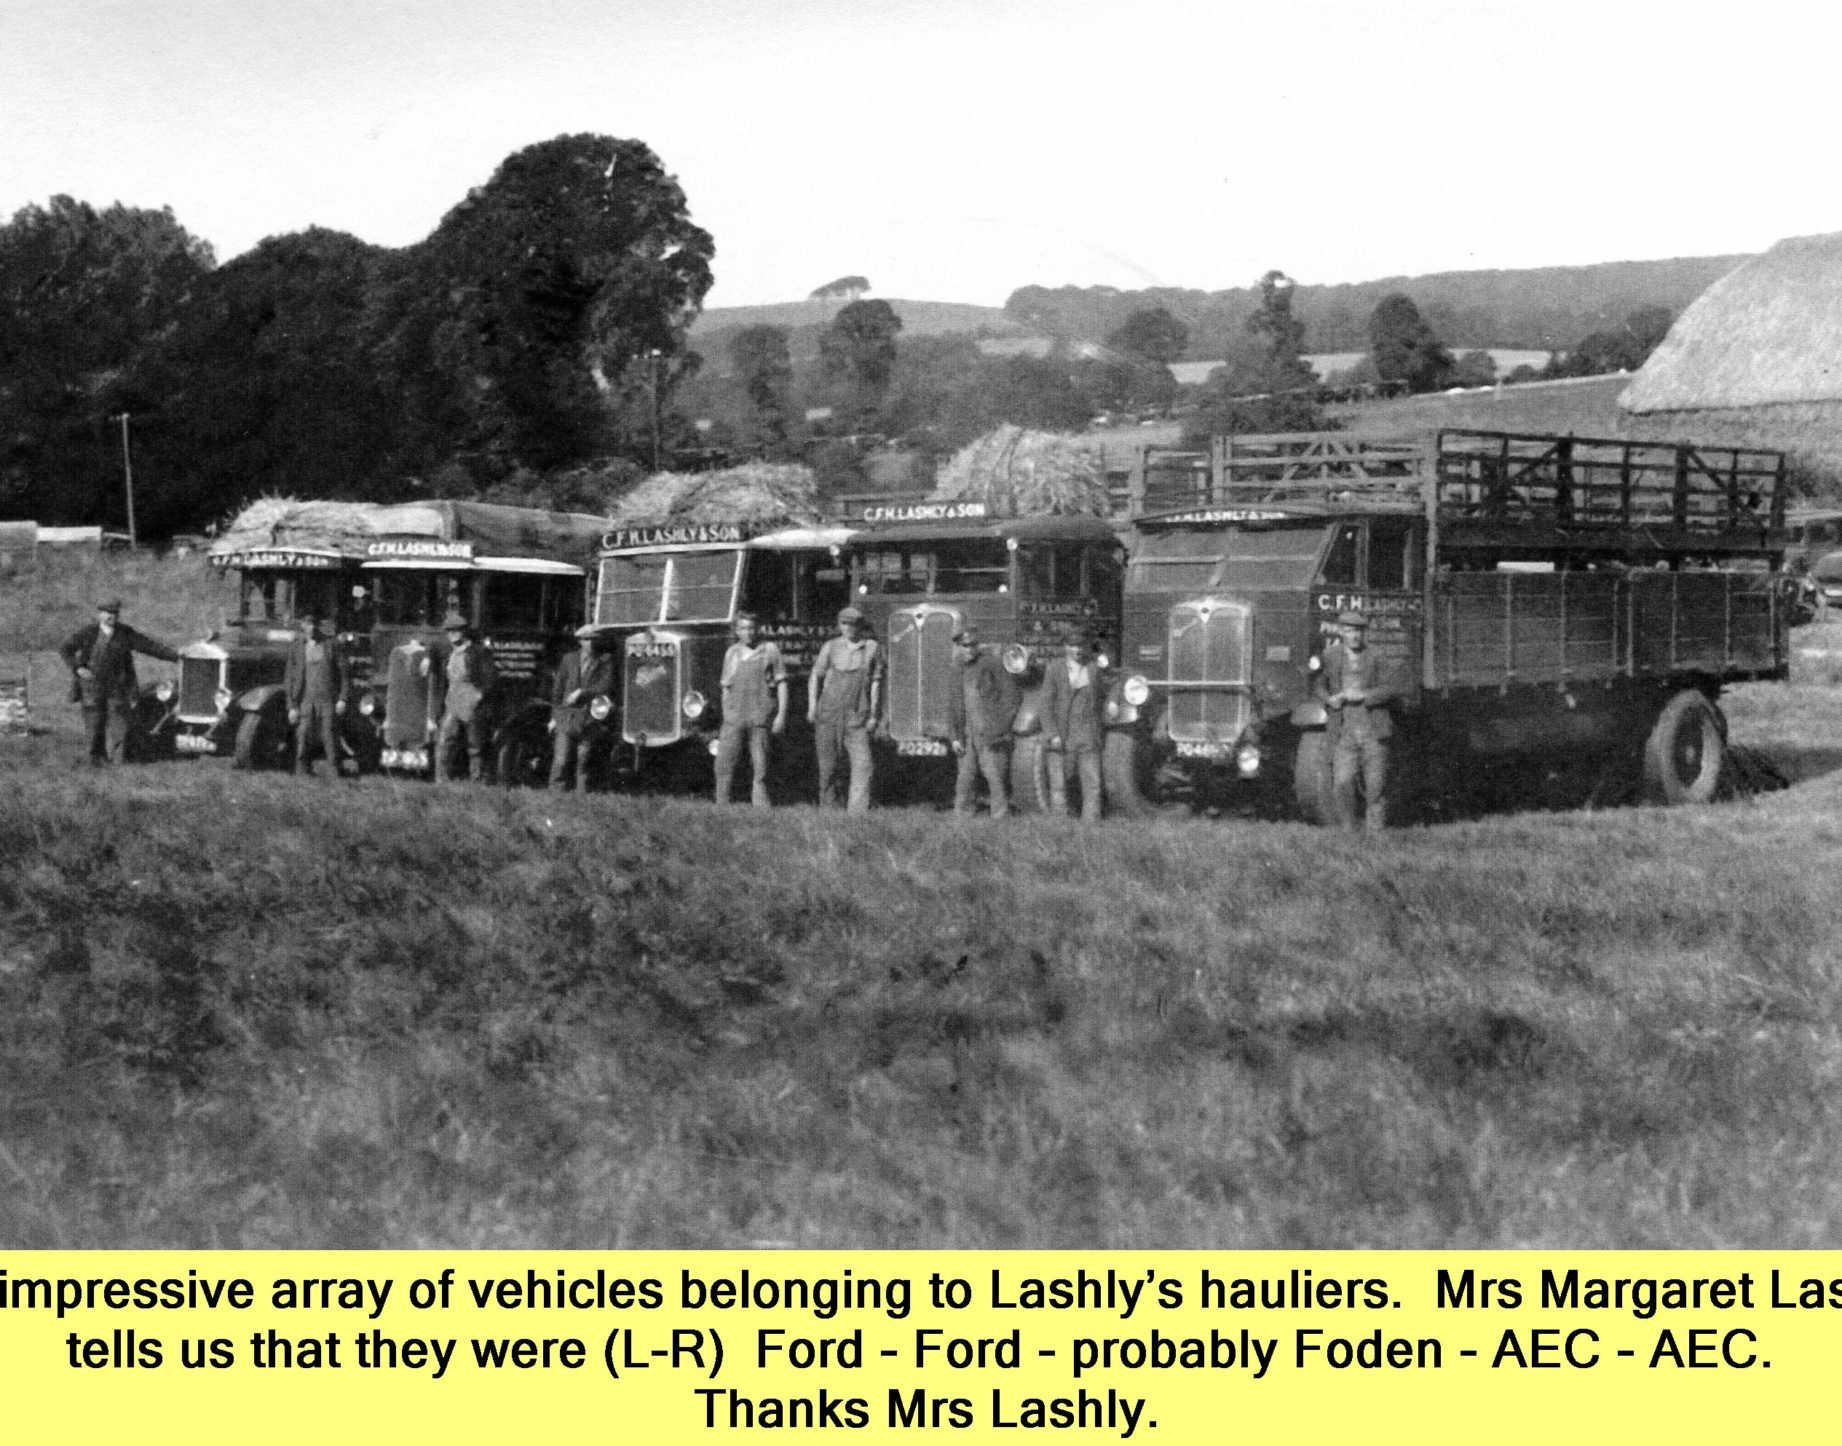 WESTBOURNE HISTORY PHOTO, LASHLY, HAULIER, FODEN, AEC